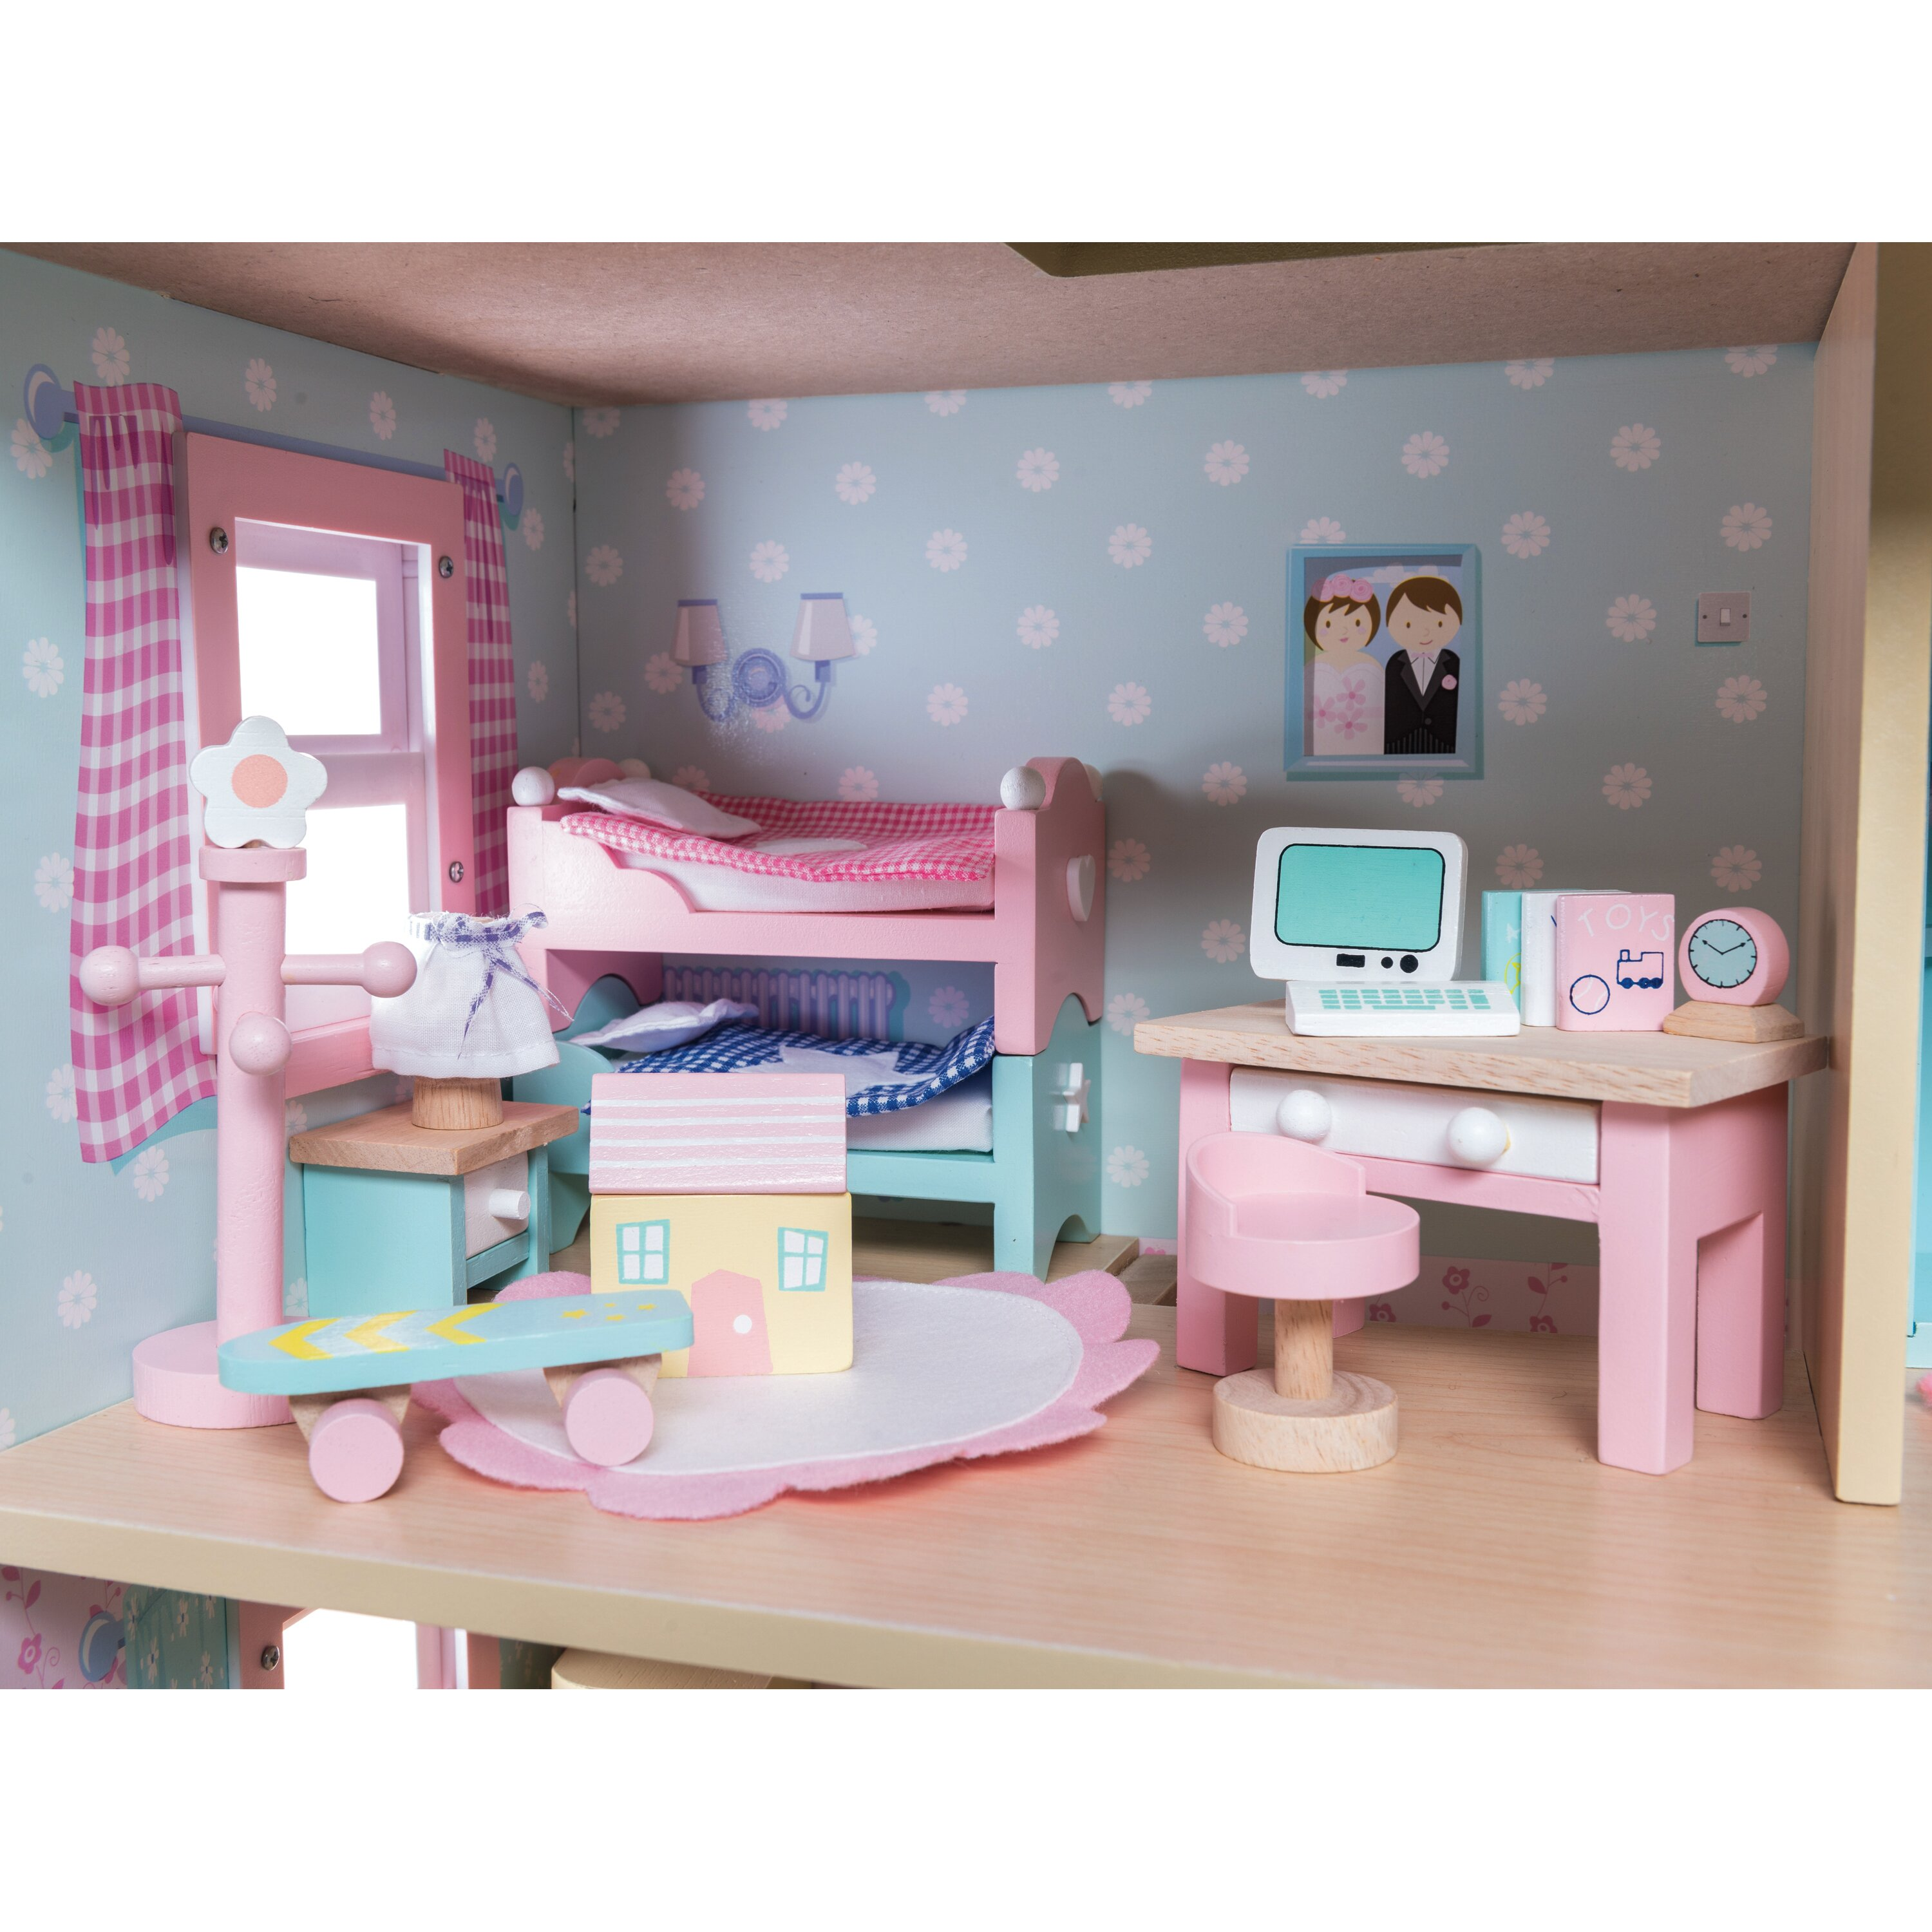 Le Toy Van Daisylane Dollhouse Children's Bedroom Set